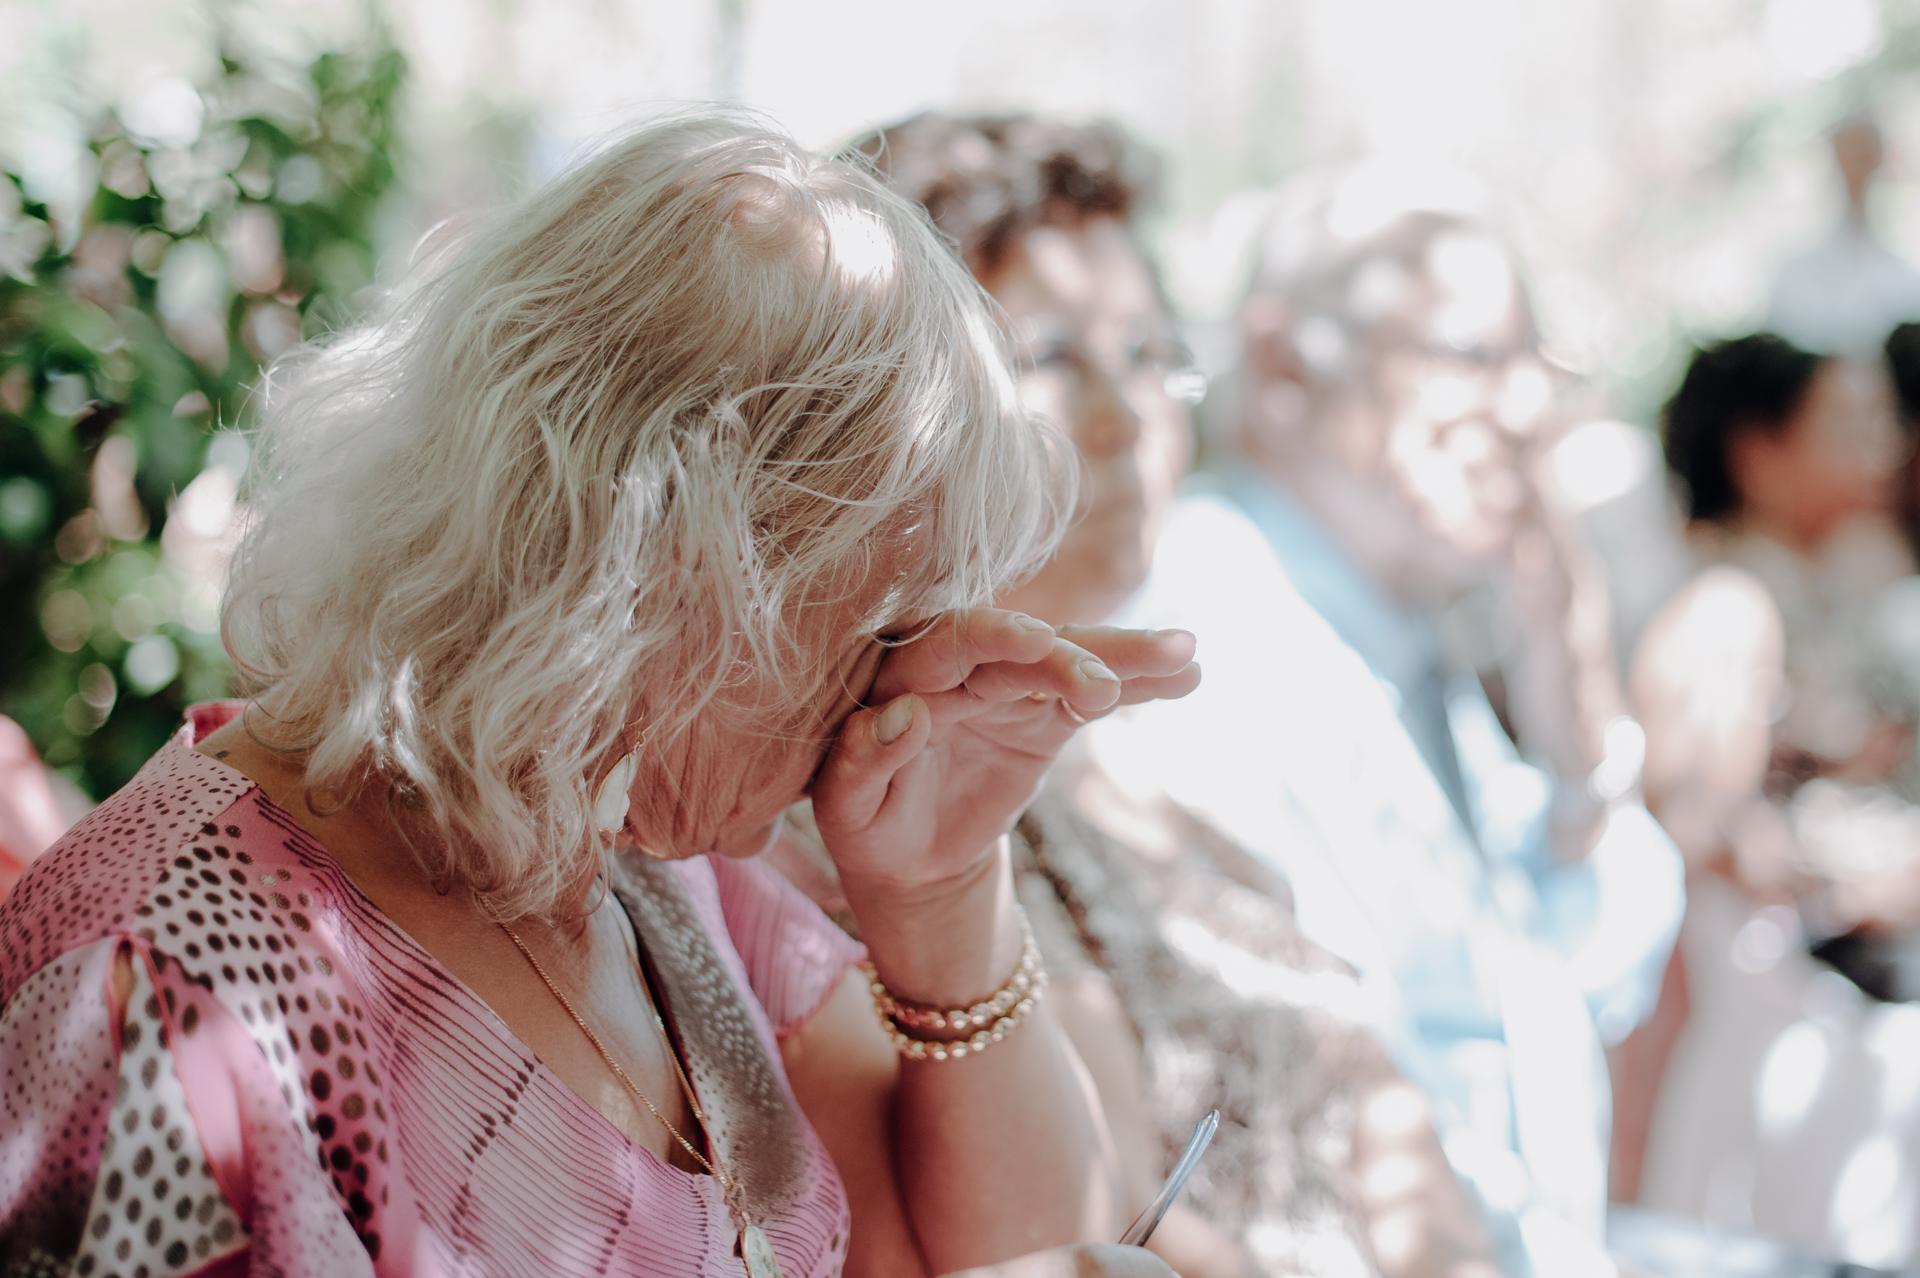 Wedding Photographers of Lisbon, Portugal | Overcome with emotion, the groom's mother wipes away a tear